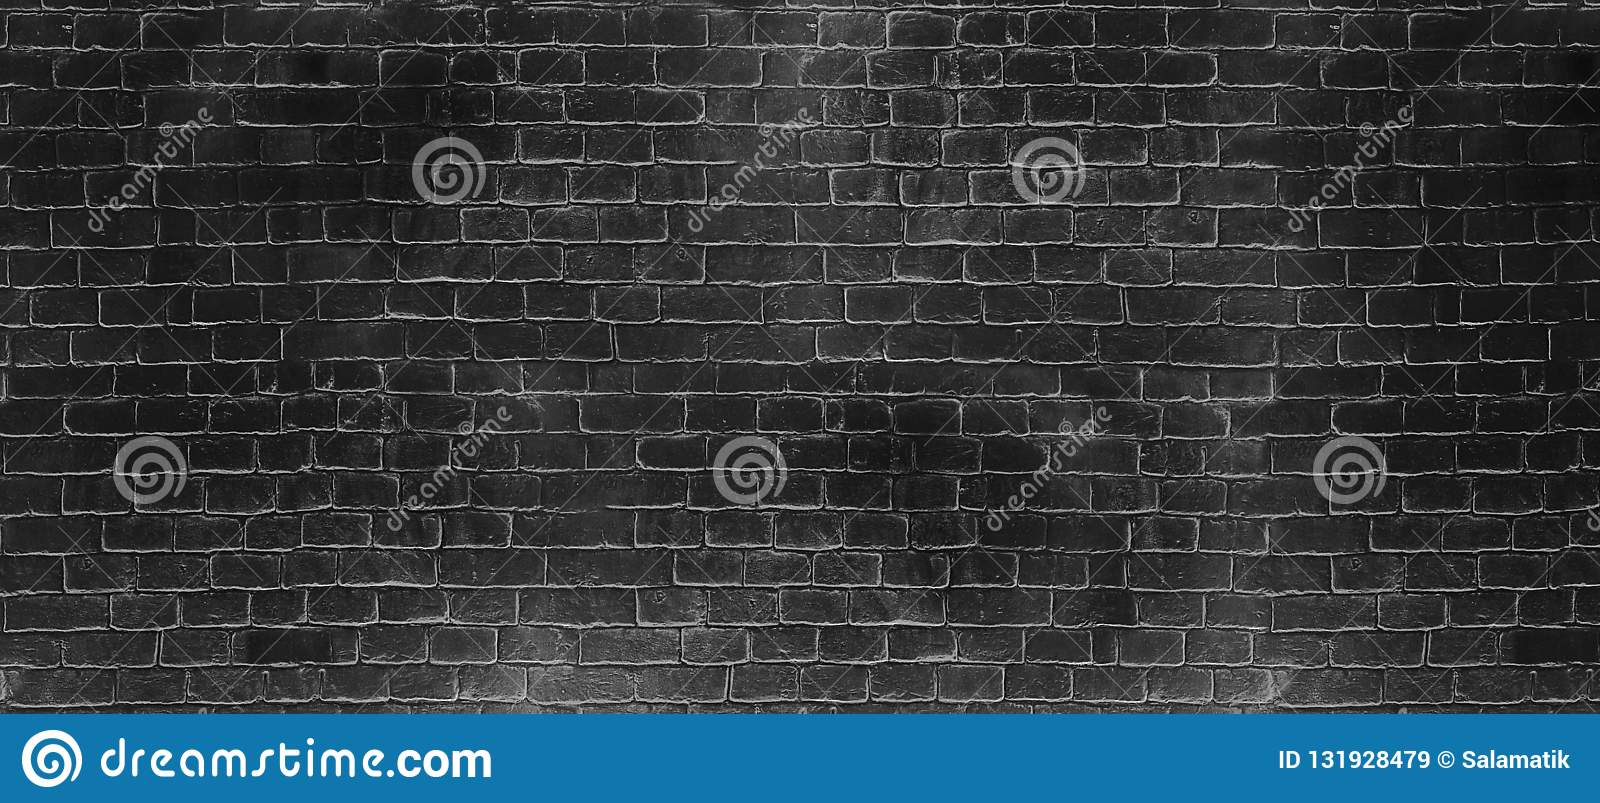 Vintage old dark black wash brick wall texture. Panoramic background for your text or image